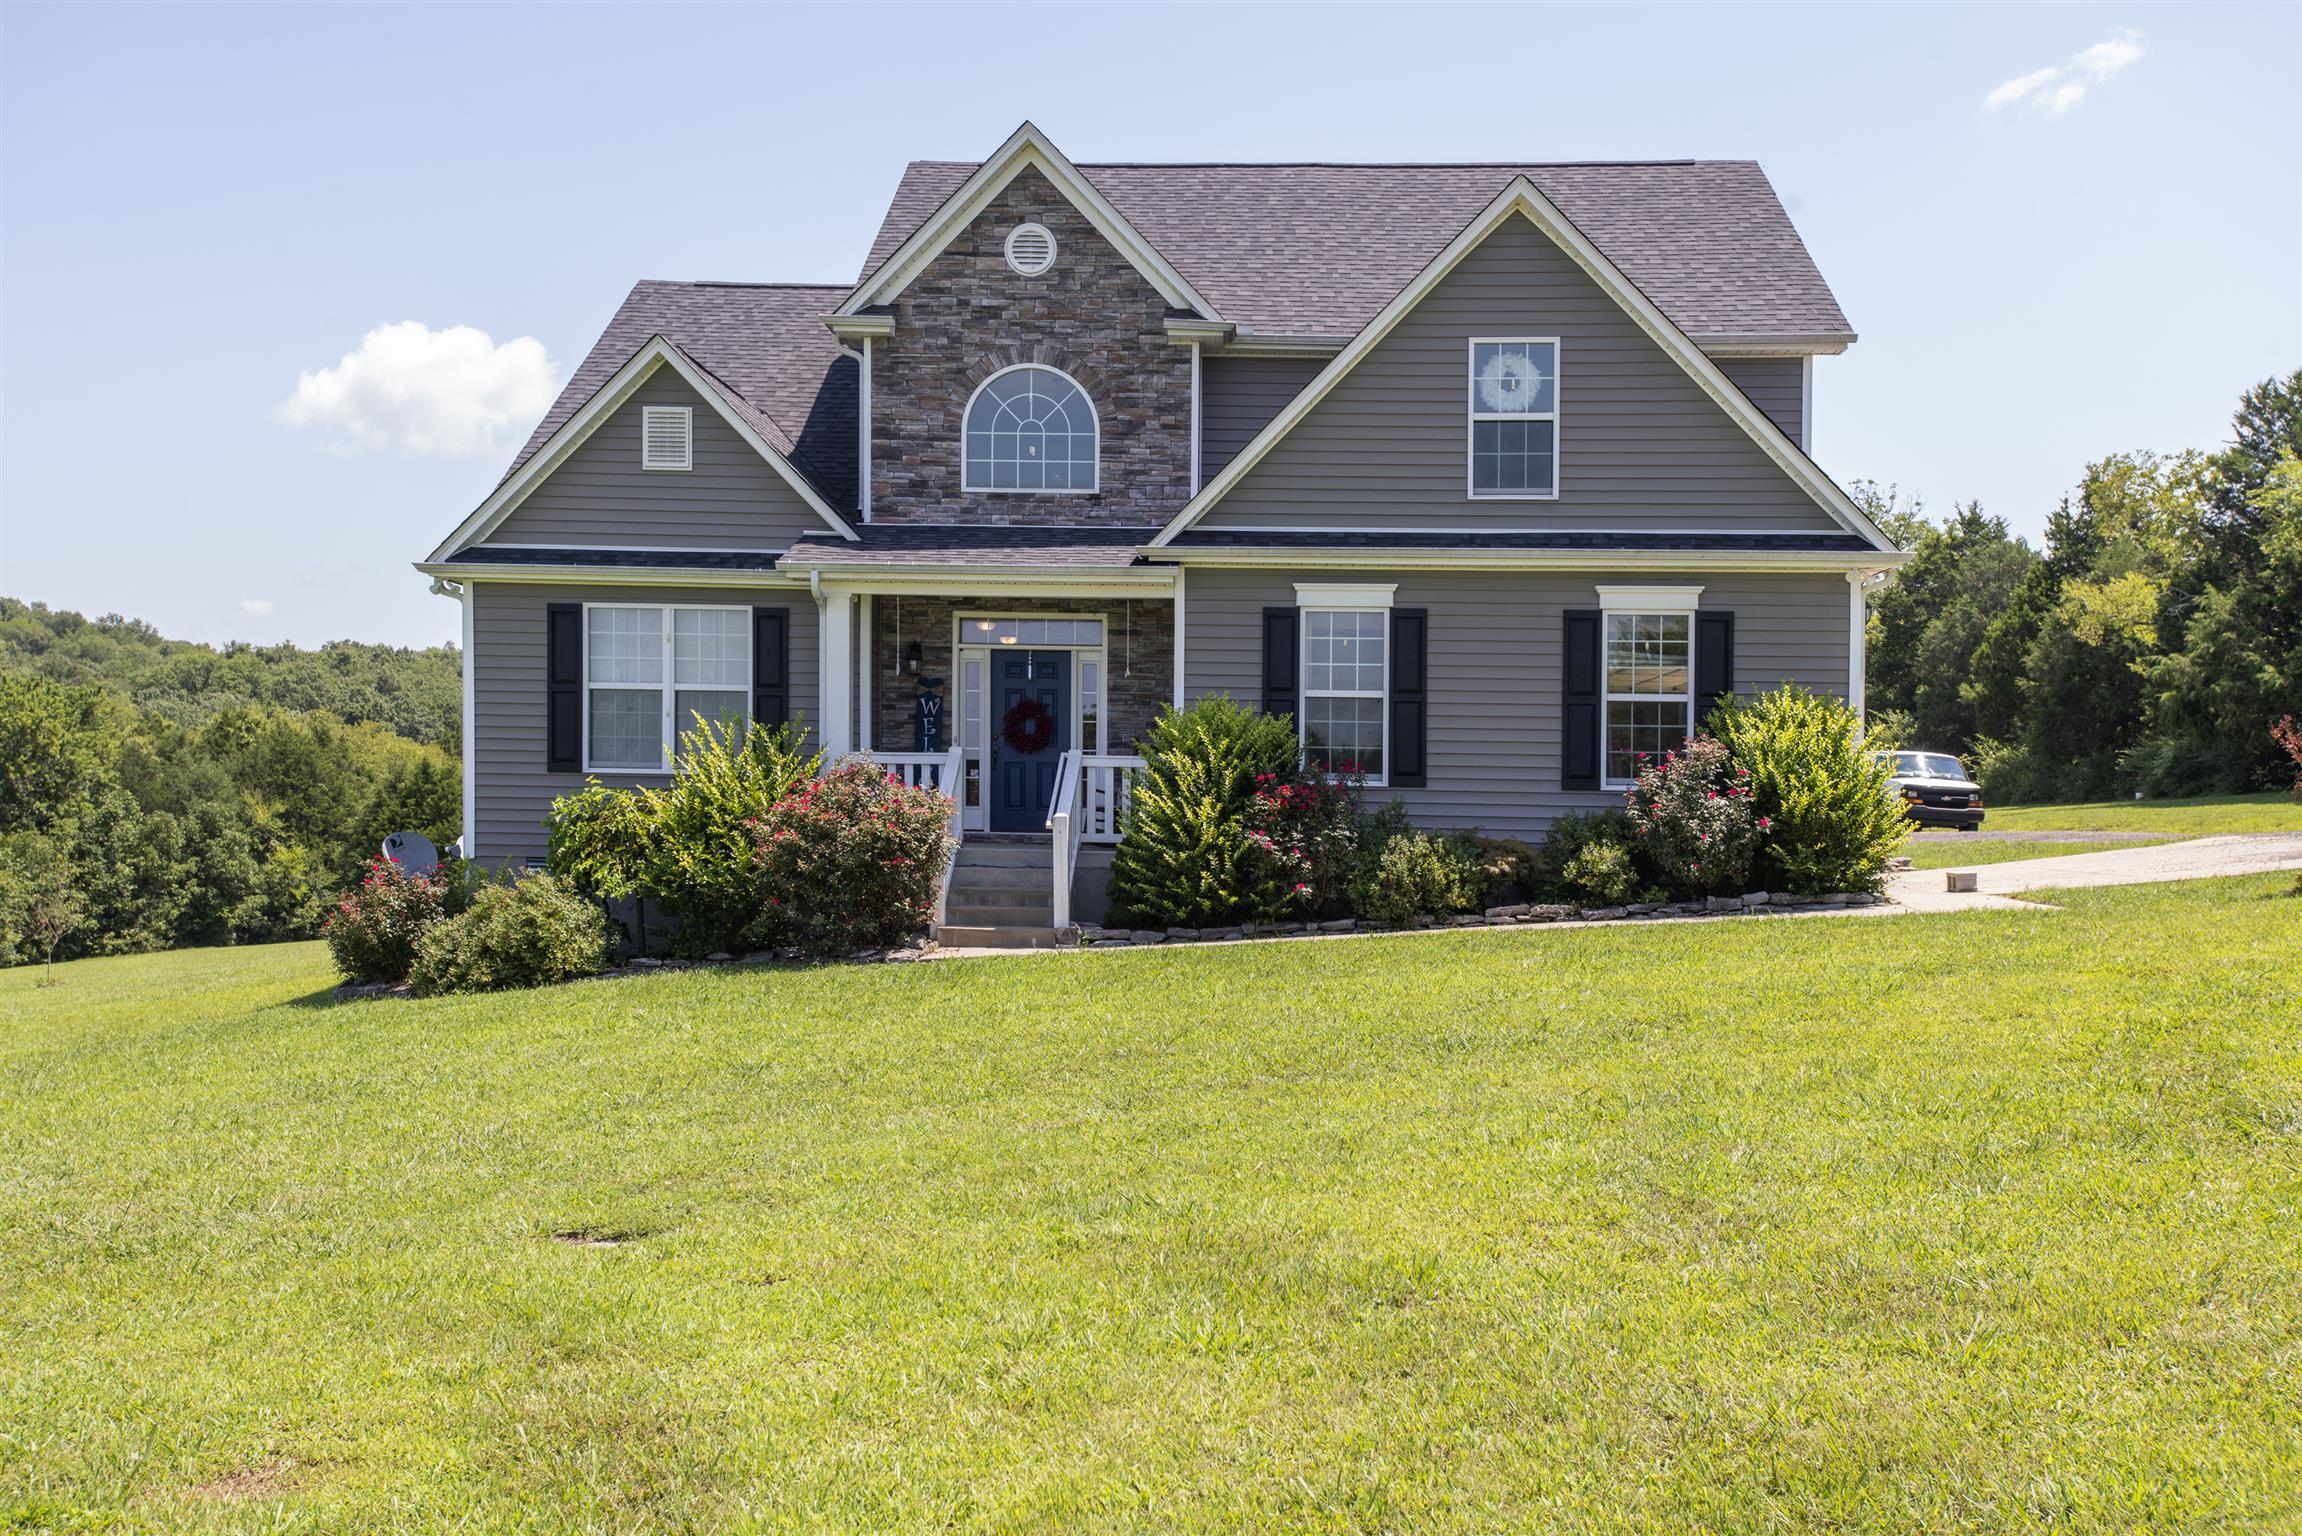 2101 Locust Grove Rd, Lebanon, TN 37090 - Lebanon, TN real estate listing